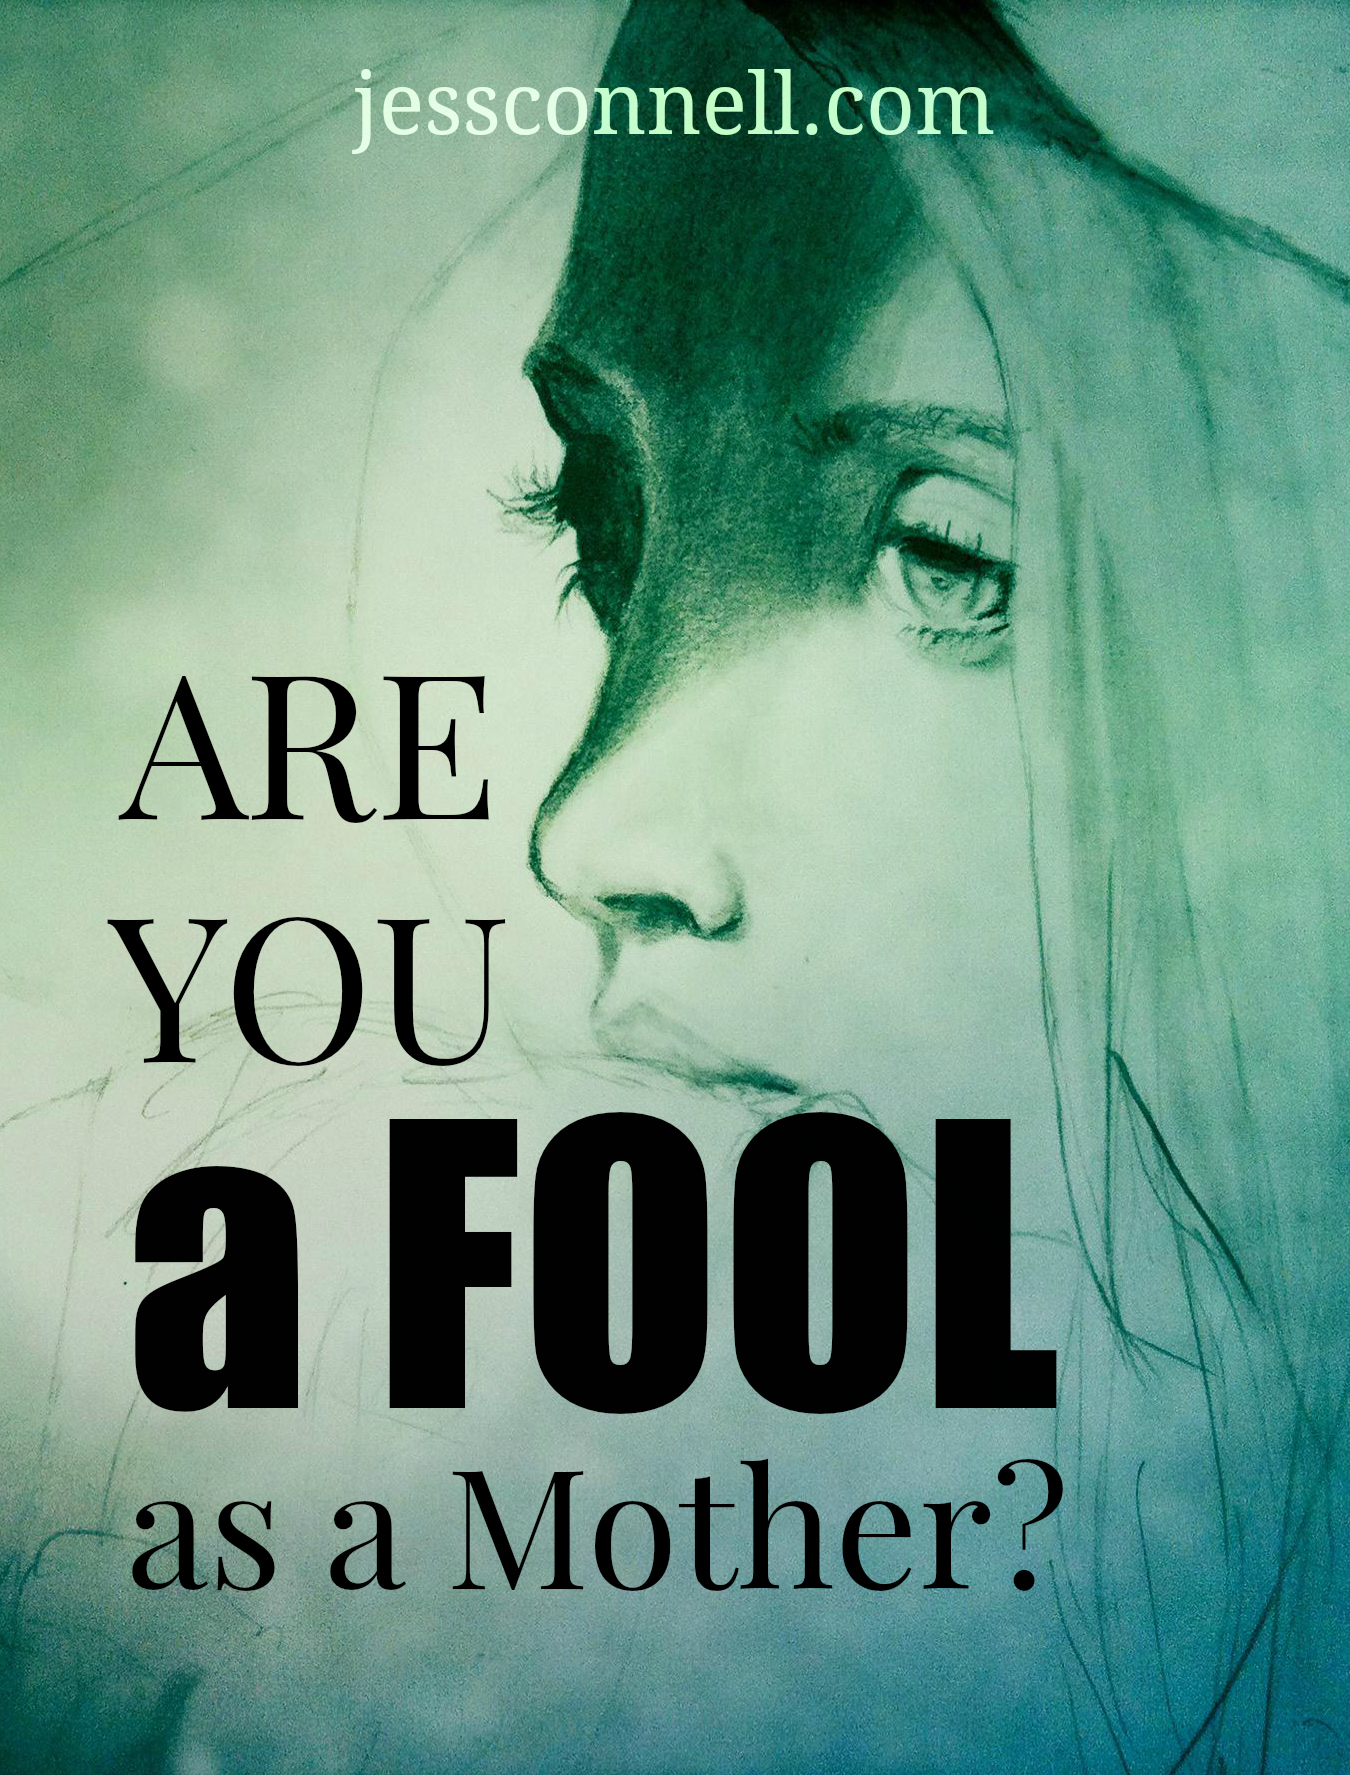 Are You A FOOL As a Mother? // jessconnell.com